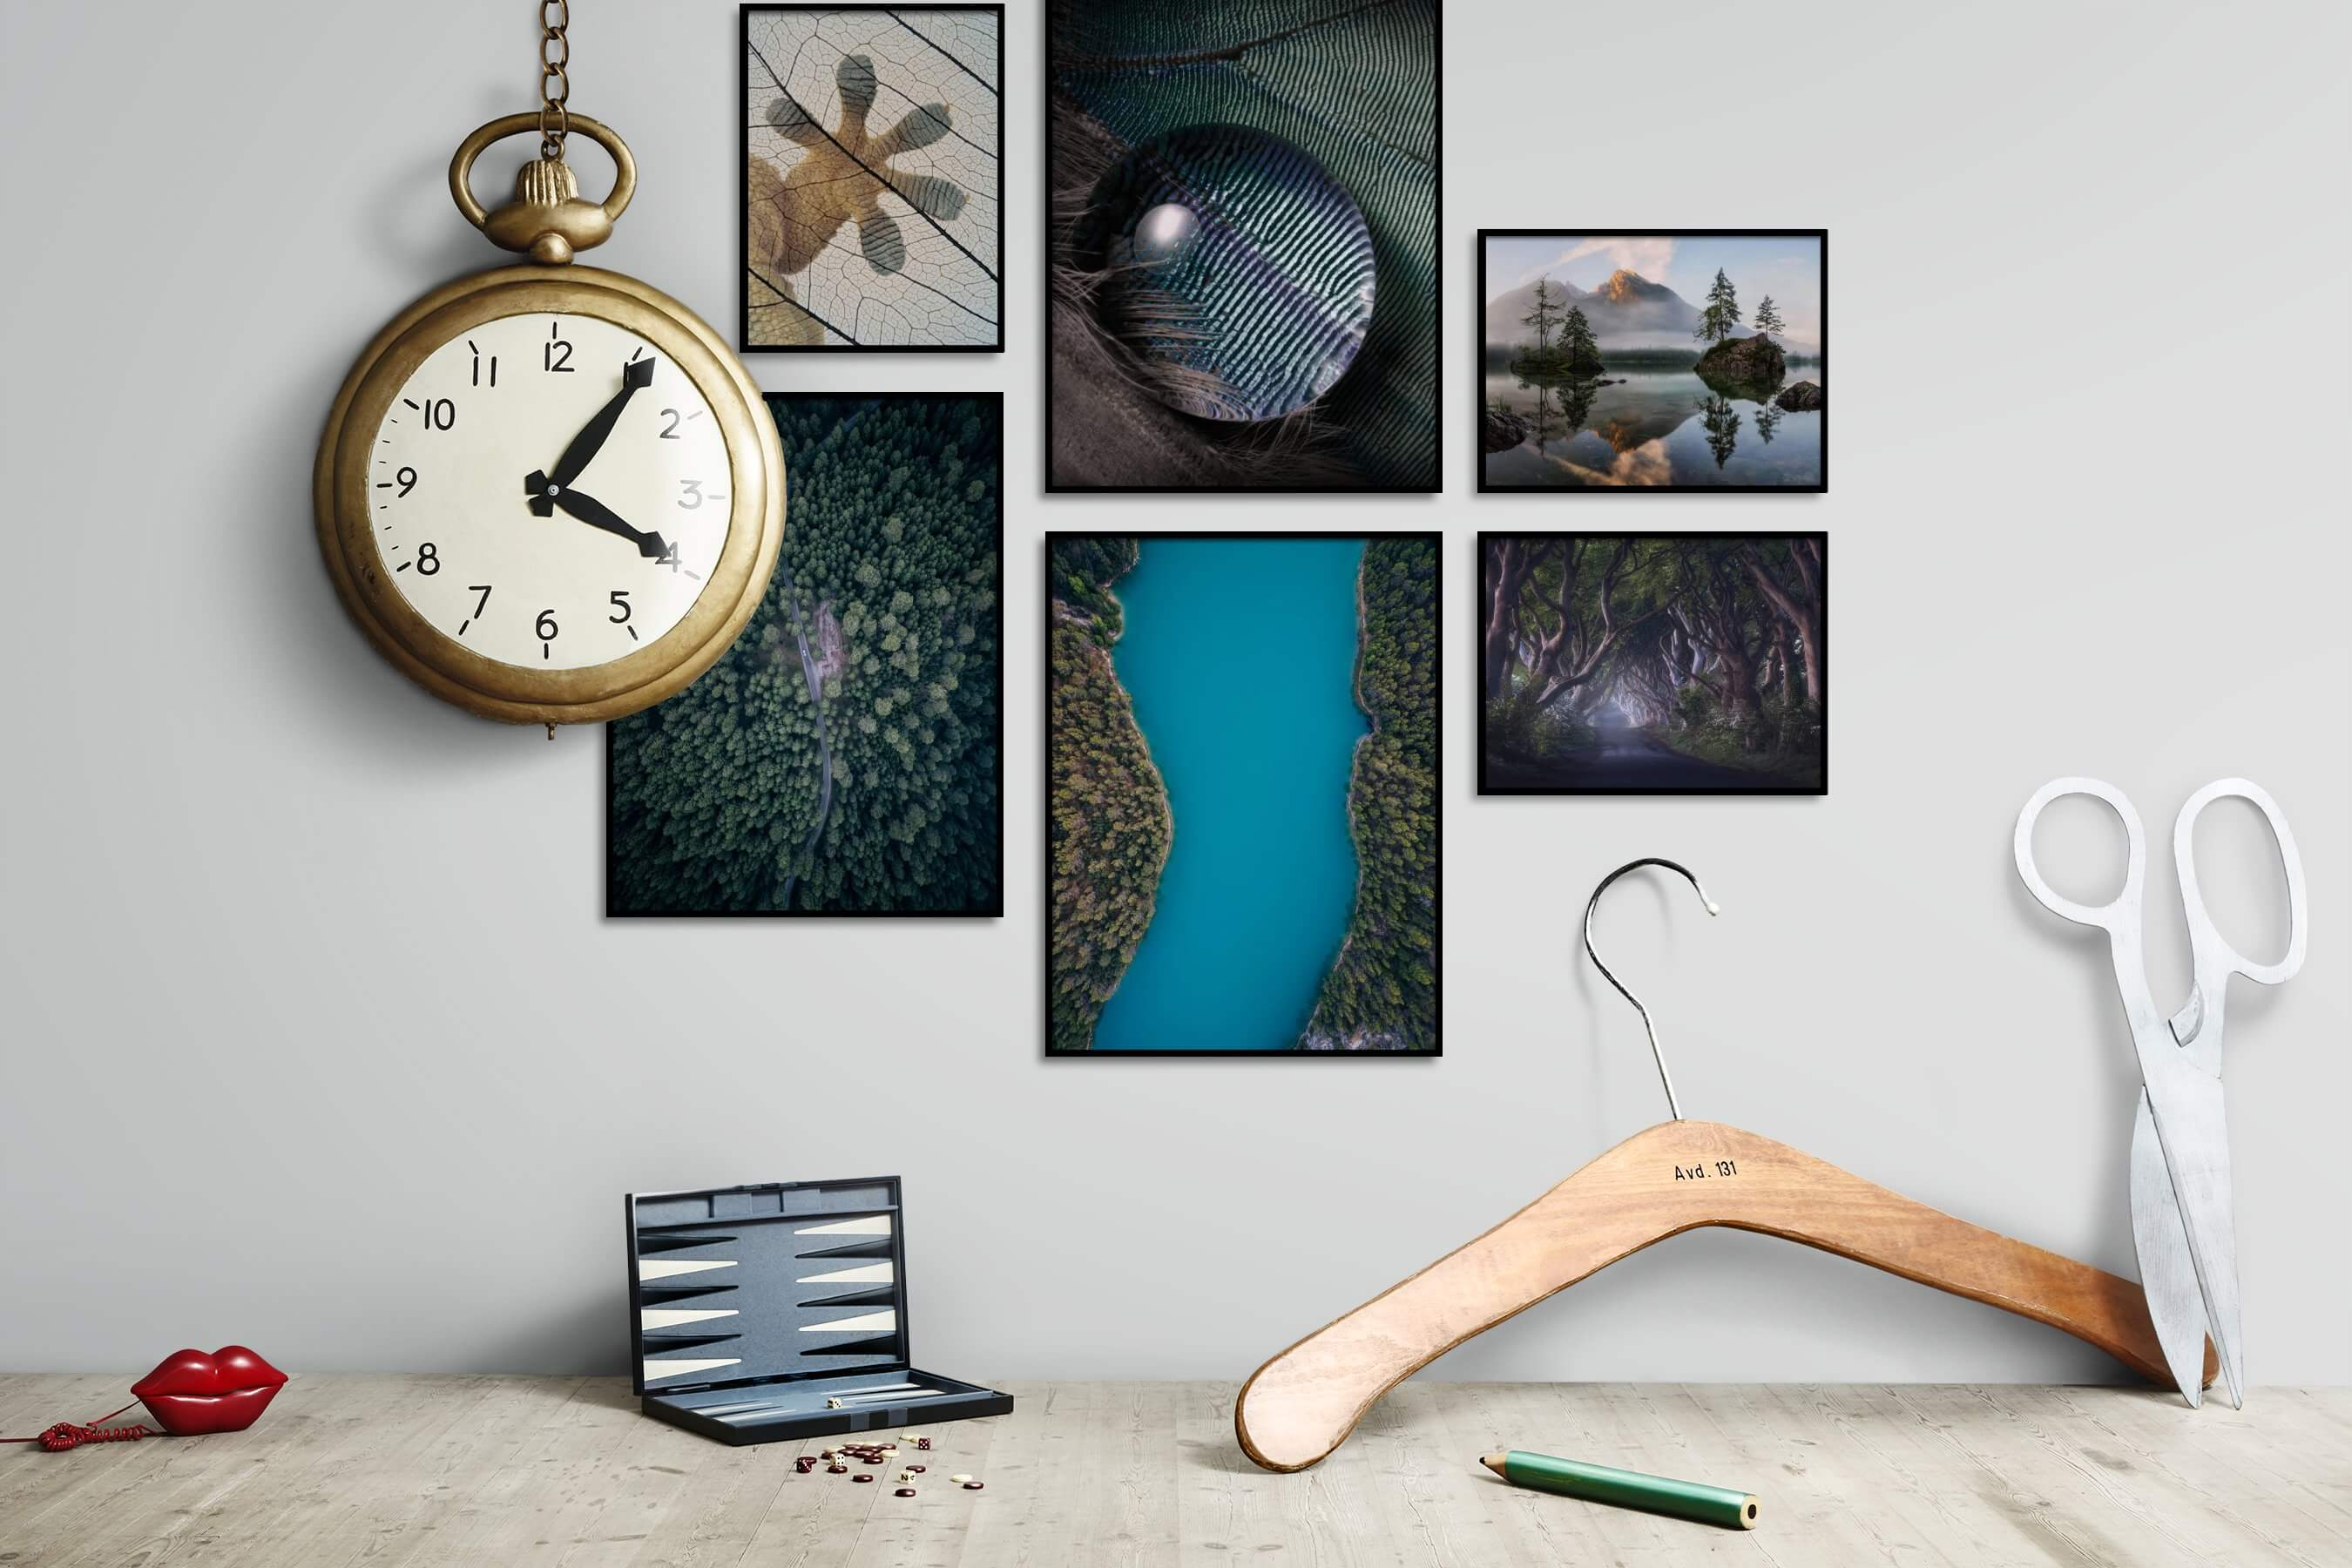 Gallery wall idea with six framed pictures arranged on a wall depicting For the Moderate, Animals, Nature, Beach & Water, and Mindfulness